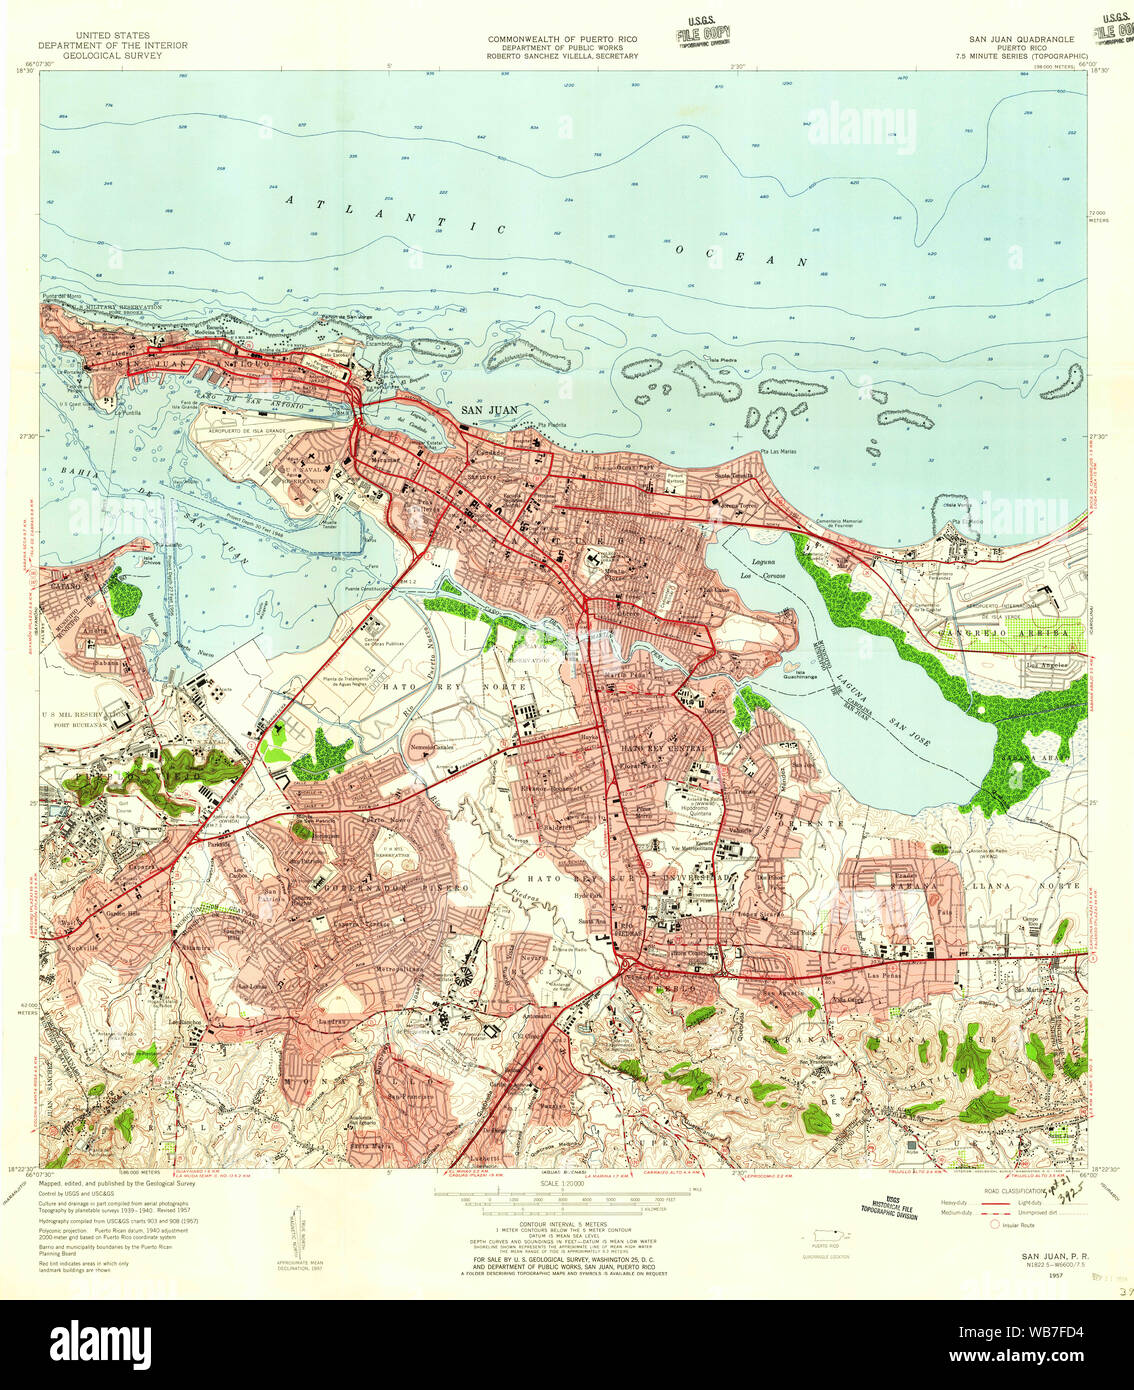 USGS TOPO Map Puerto Rico PR San Juan 362269 1957 20000 ... San Juan Puerto Rico Map on united states virgin islands, san juan on world map, san juan nm map, fort san felipe del morro, bogota colombia map, old san juan, el yunque national forest, san jose, florida map, san juan spain map, guatemala city, puerto rican people, san juan cruise terminal map, tegucigalpa honduras map, miami map, old san juan map, managua nicaragua map, san juan isla verde map, santo domingo, dallas texas map, san salvador, san juan caracas map, rio de janeiro brazil map, san juan airport map, caribbean map, saint thomas, san juan city map, san juan belize map, lima peru map, caracas venezuela map,